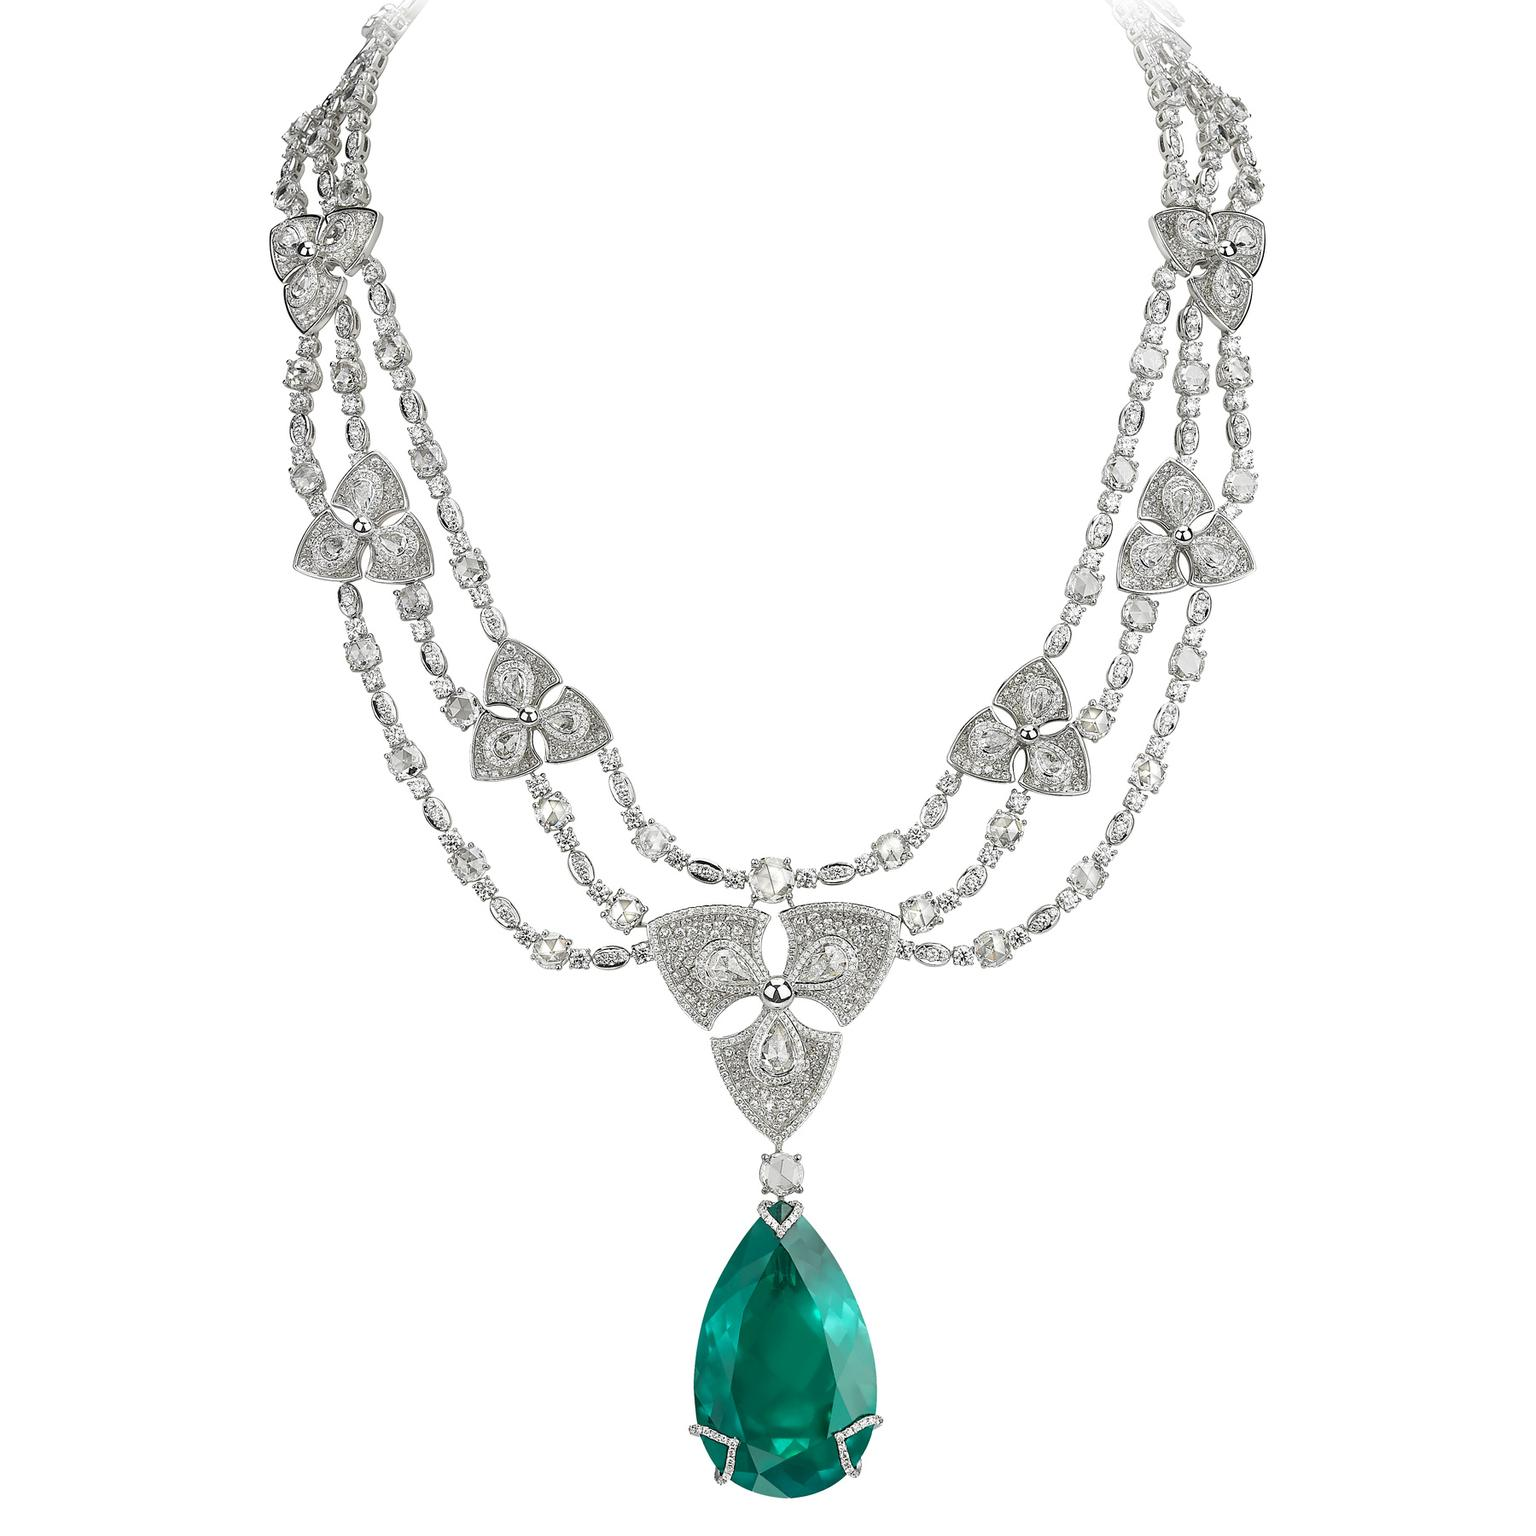 One-of-a-kind Avakian emerald necklace with spinning flower